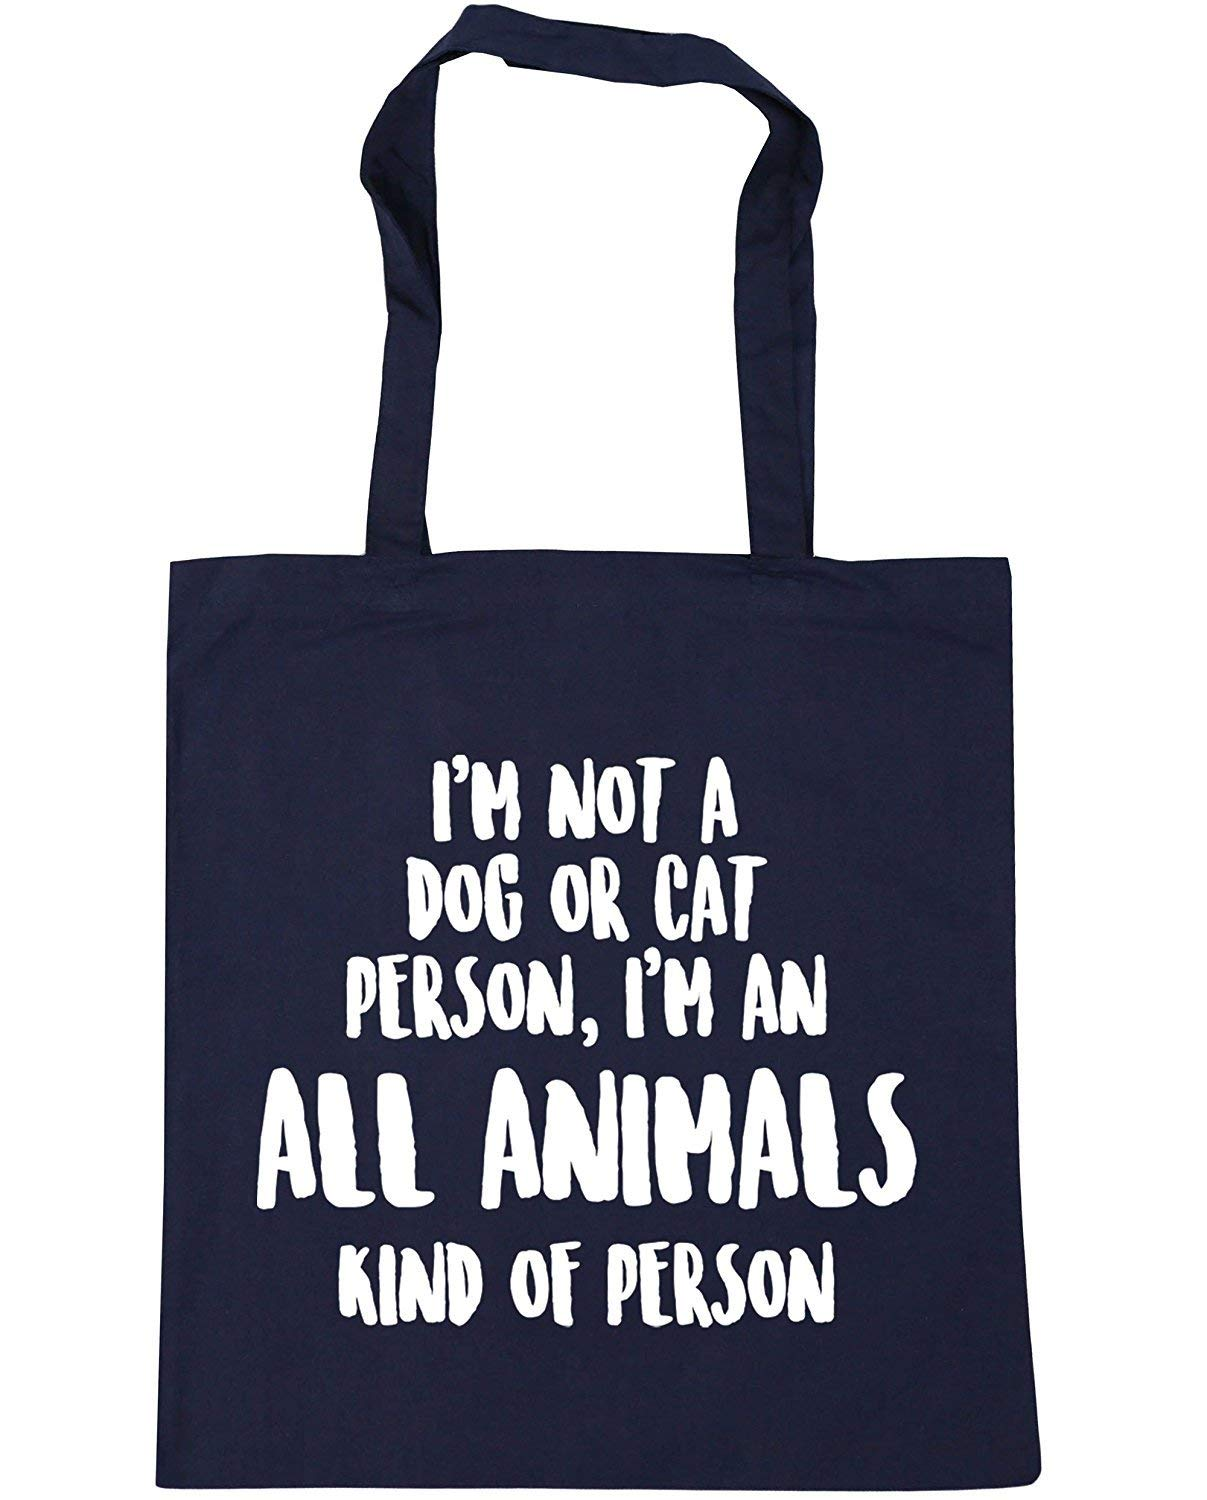 WENNUNA Im Not a Dog or Cat Kind of Person Im an All Animals Kind of Person Tote Shopping Gym Beach Bag